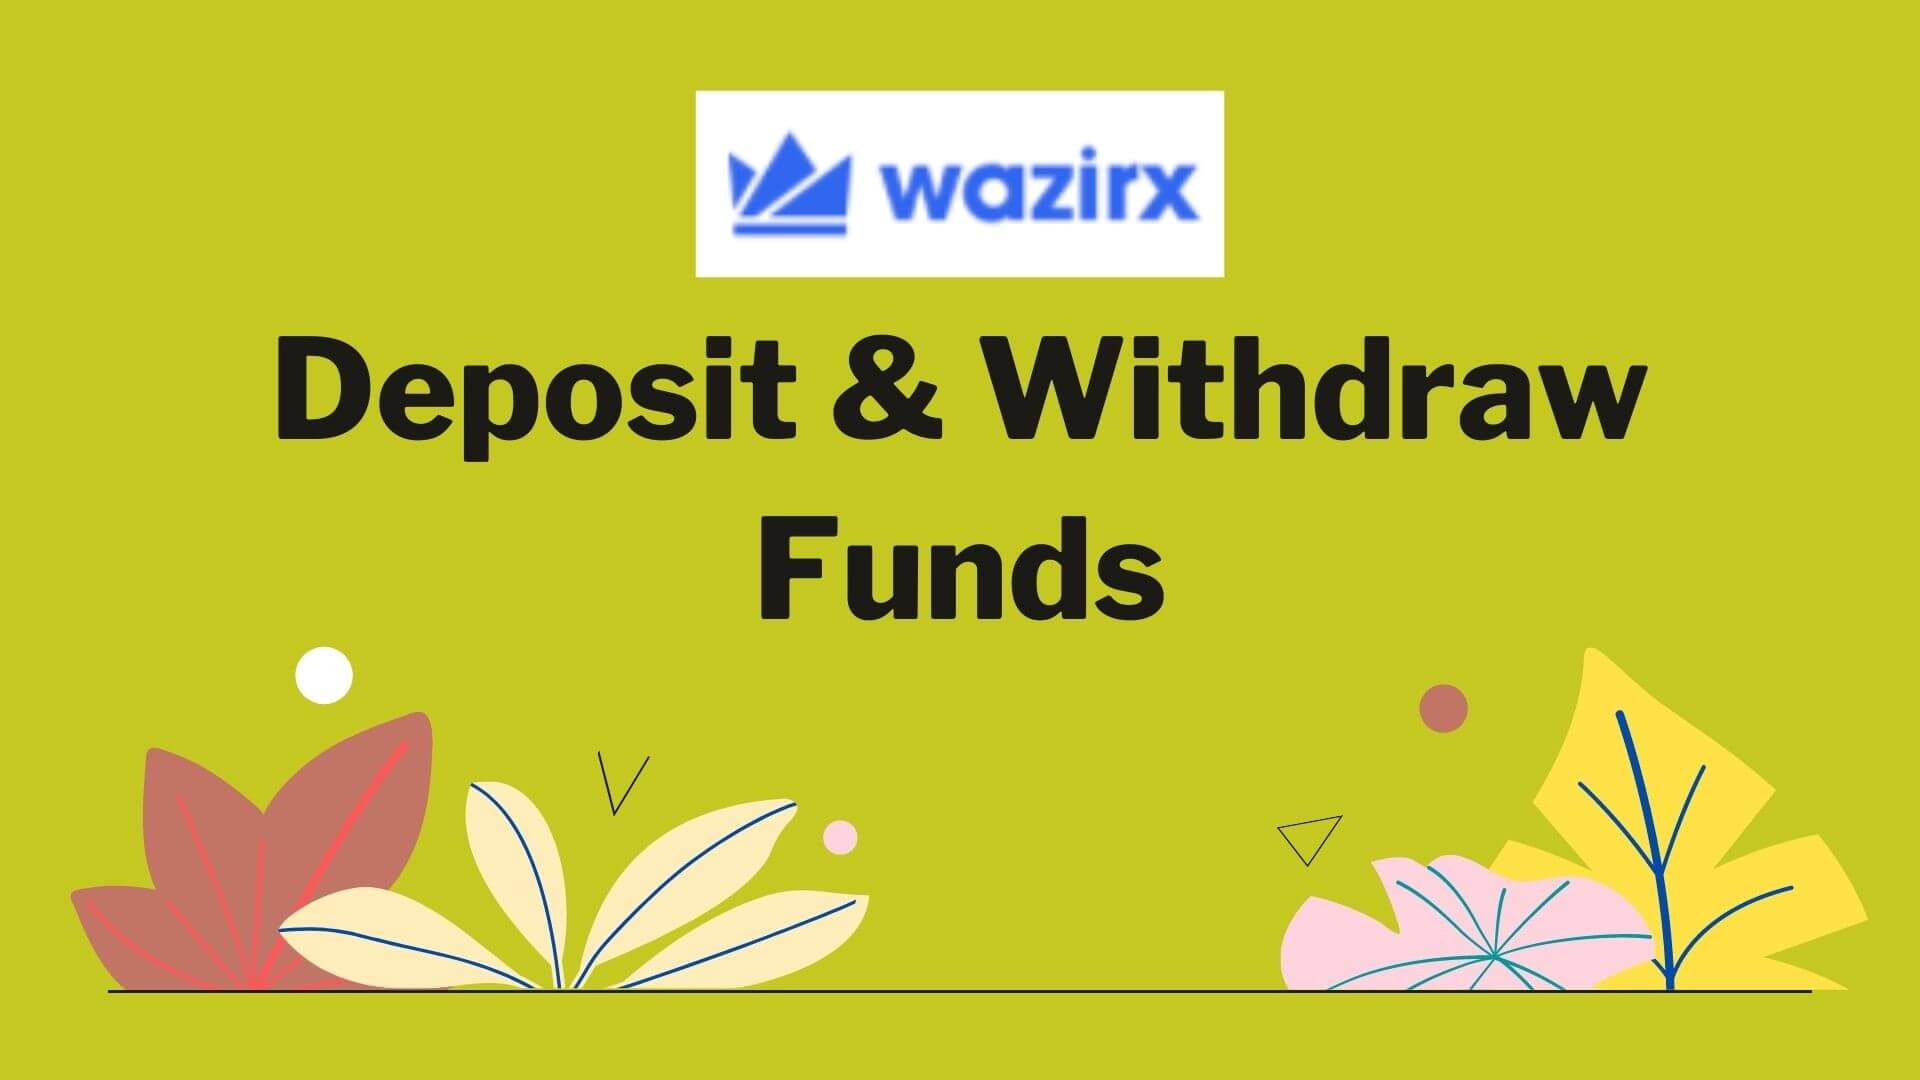 WazirX Deposit and Withdraw Funds